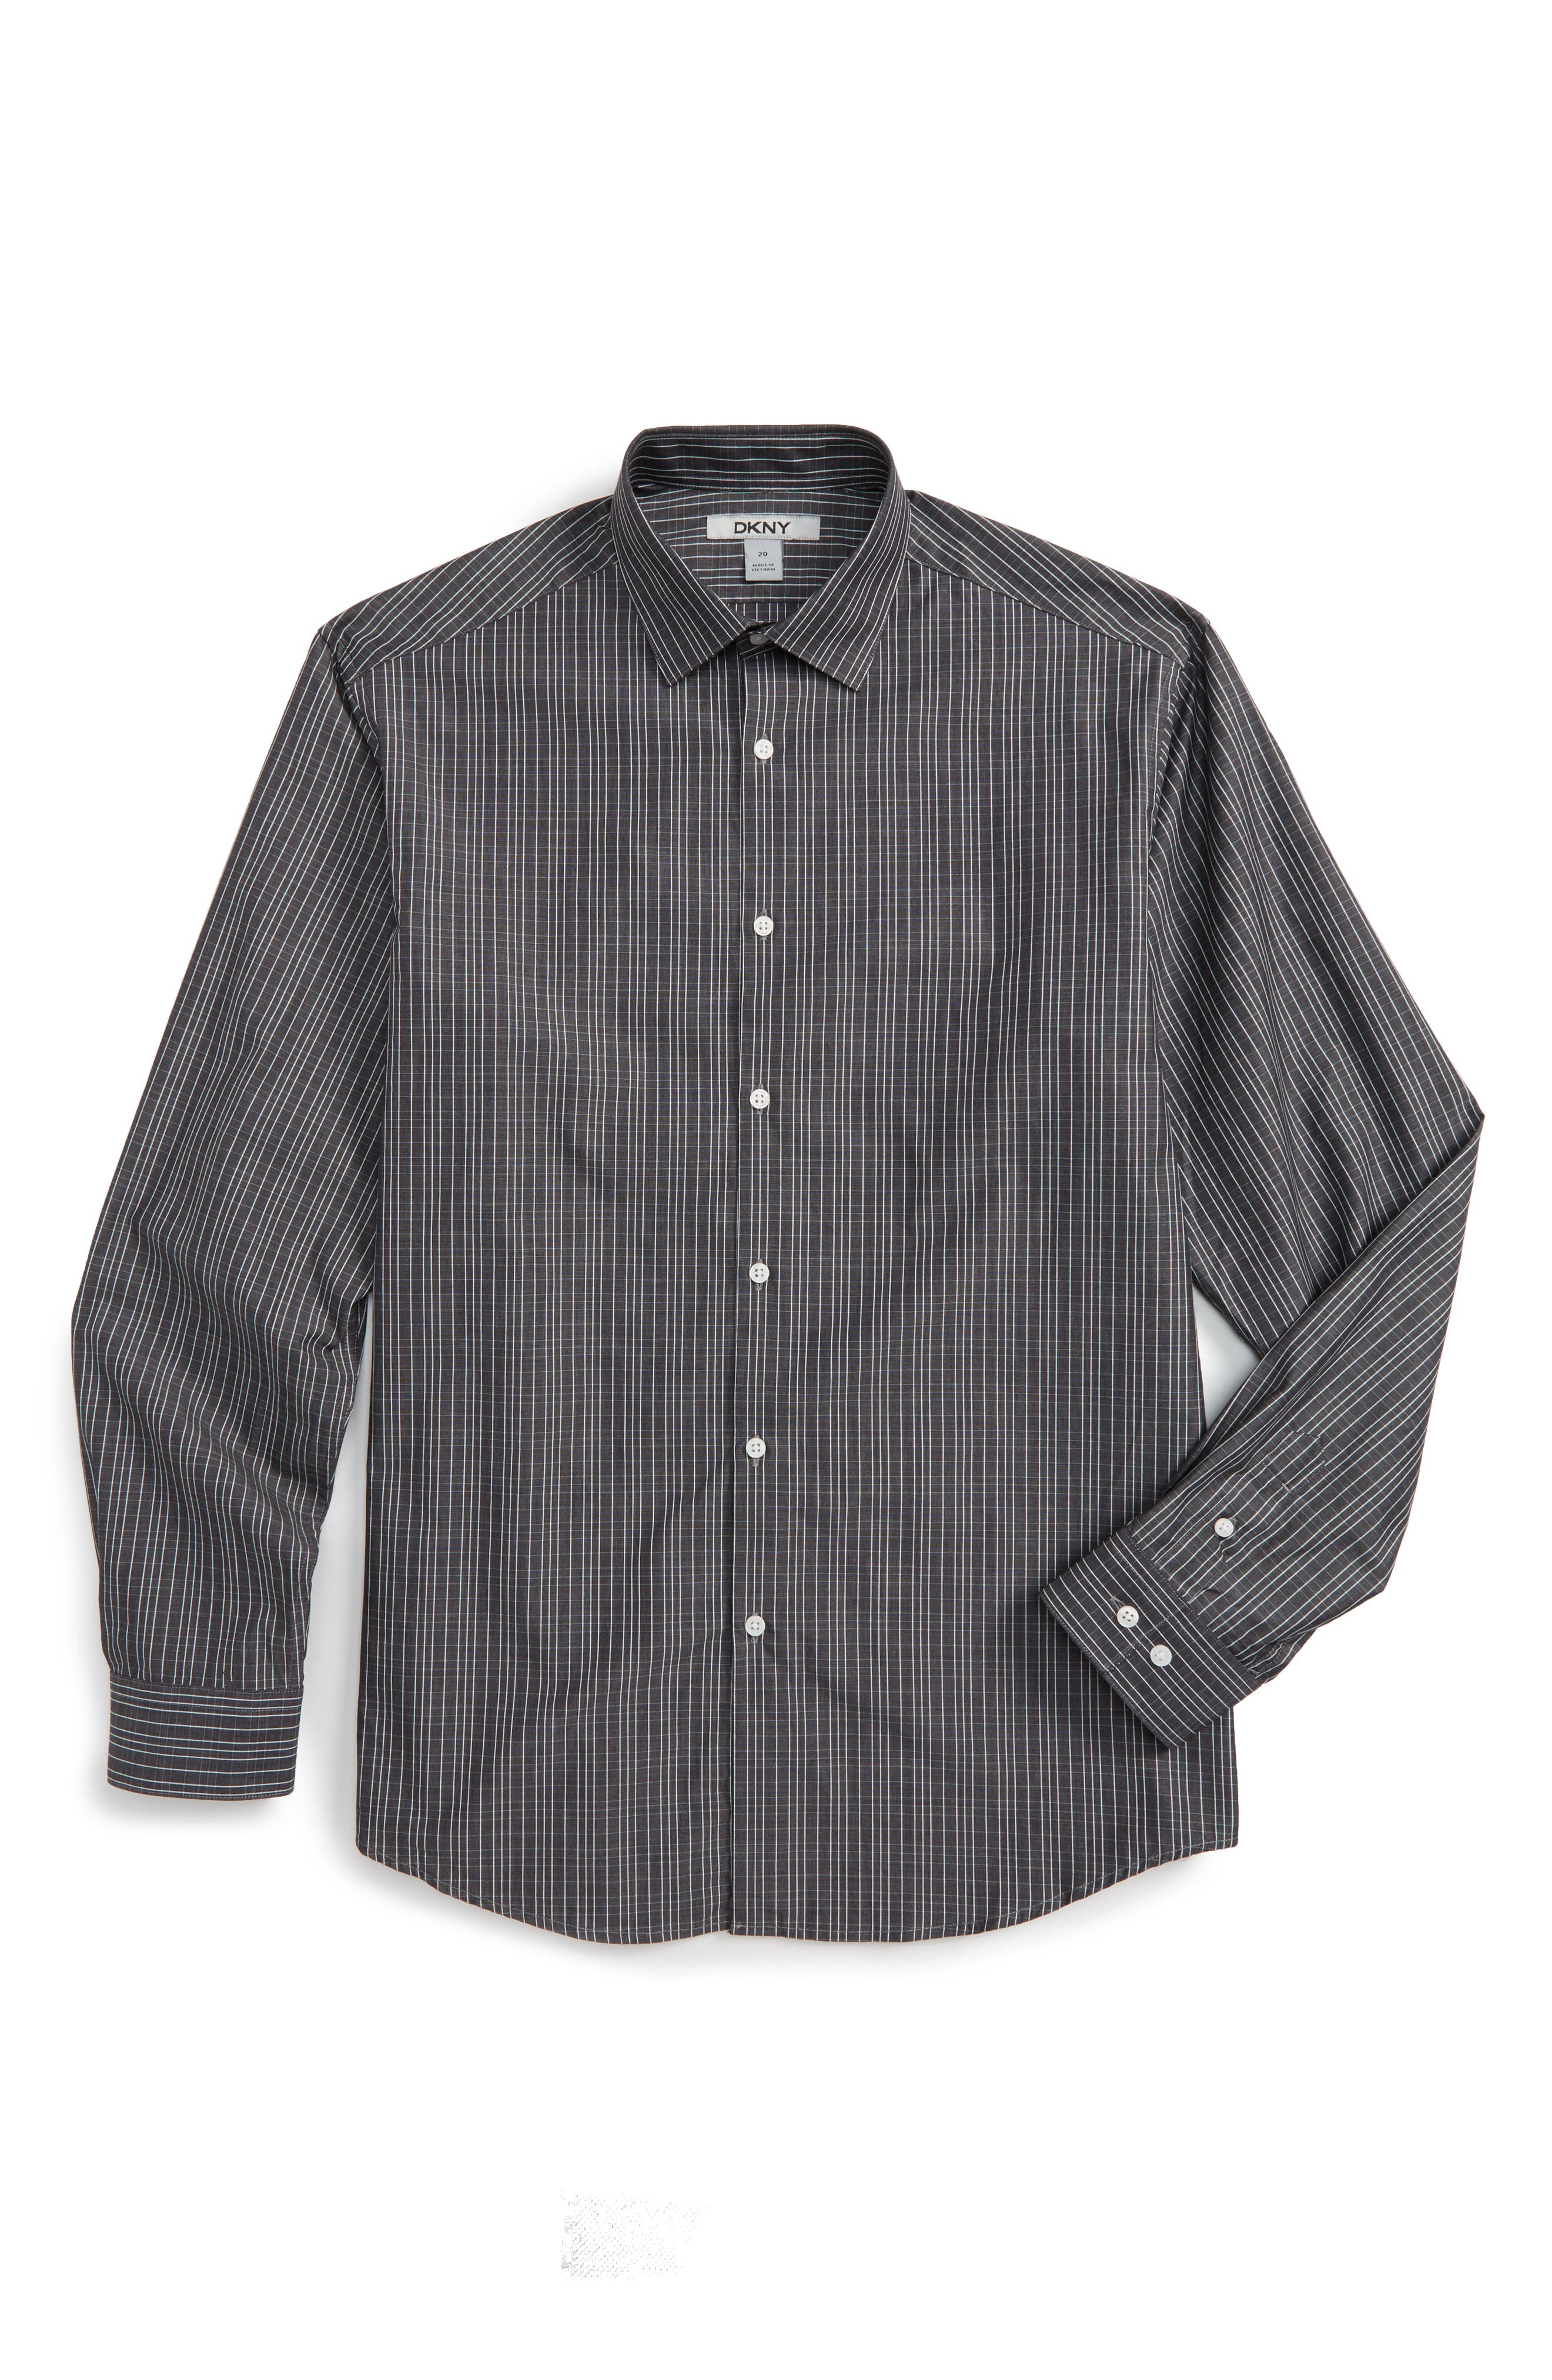 DKNY Stripe Dress Shirt